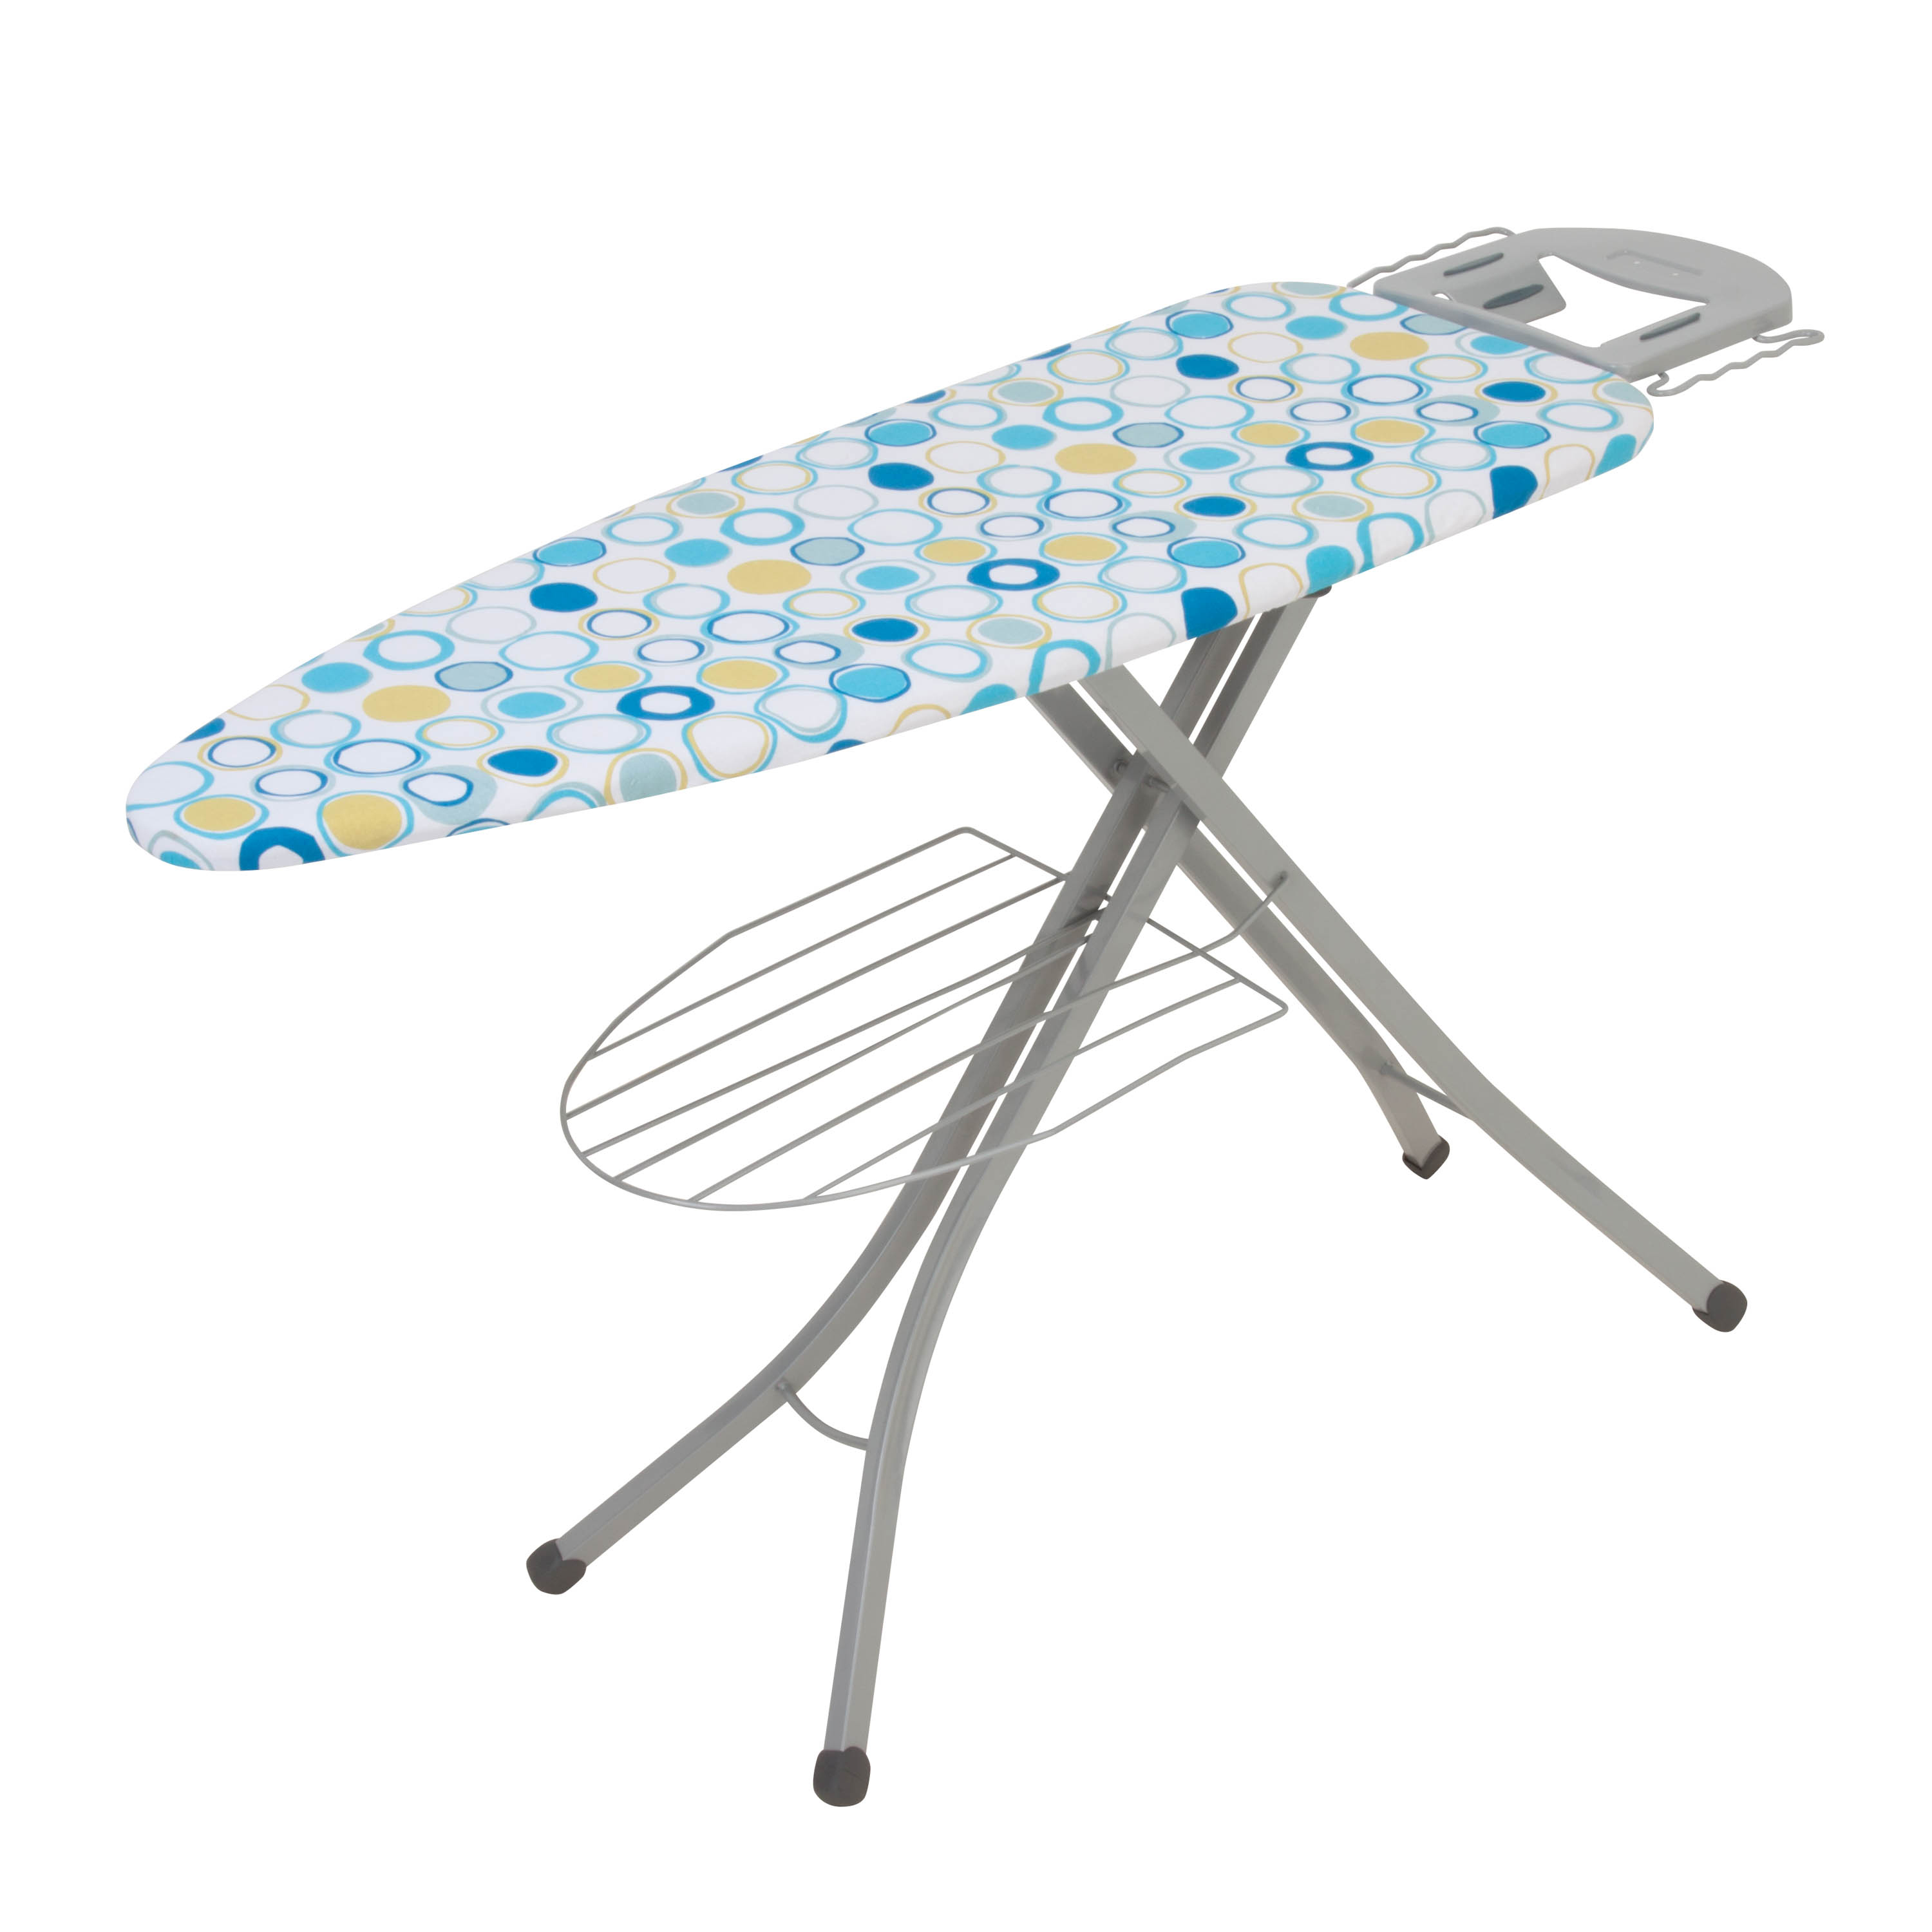 "Honey-Can-Do Ironing Board With Iron Rest And Shelf, 48""H x 18""W x 18""D"